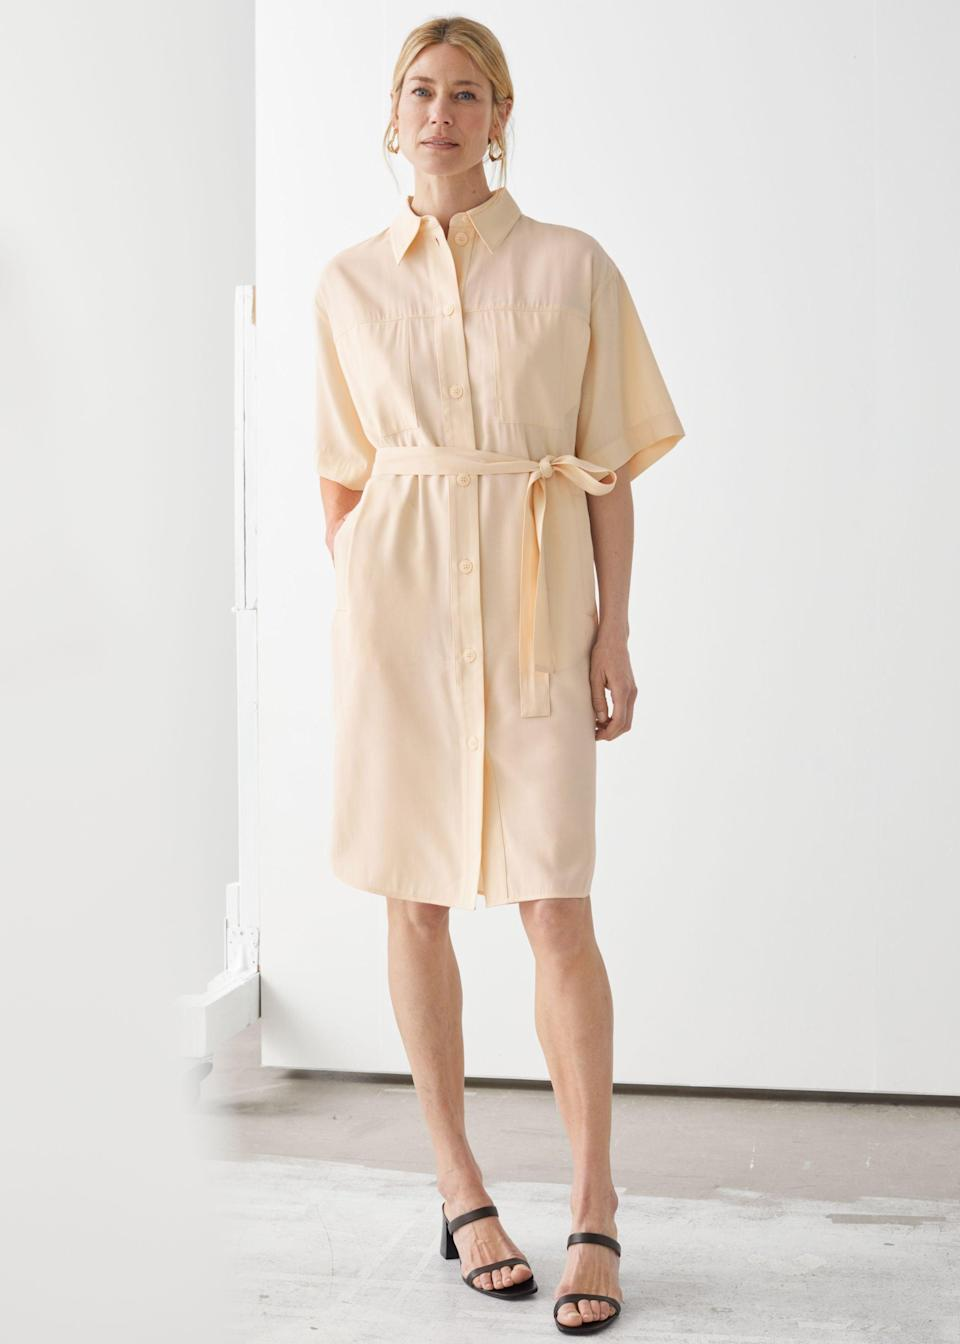 """<br> <br> <strong>& Other Stories</strong> Oversized Midi Shirt Dress, $, available at <a href=""""https://go.skimresources.com/?id=30283X879131&url=https%3A%2F%2Fwww.stories.com%2Fen_usd%2Fclothing%2Fdresses%2Fmidi-dresses%2Fproduct.oversized-midi-shirt-dress-beige.0839331001.html"""" rel=""""nofollow noopener"""" target=""""_blank"""" data-ylk=""""slk:& Other Stories"""" class=""""link rapid-noclick-resp"""">& Other Stories</a>"""